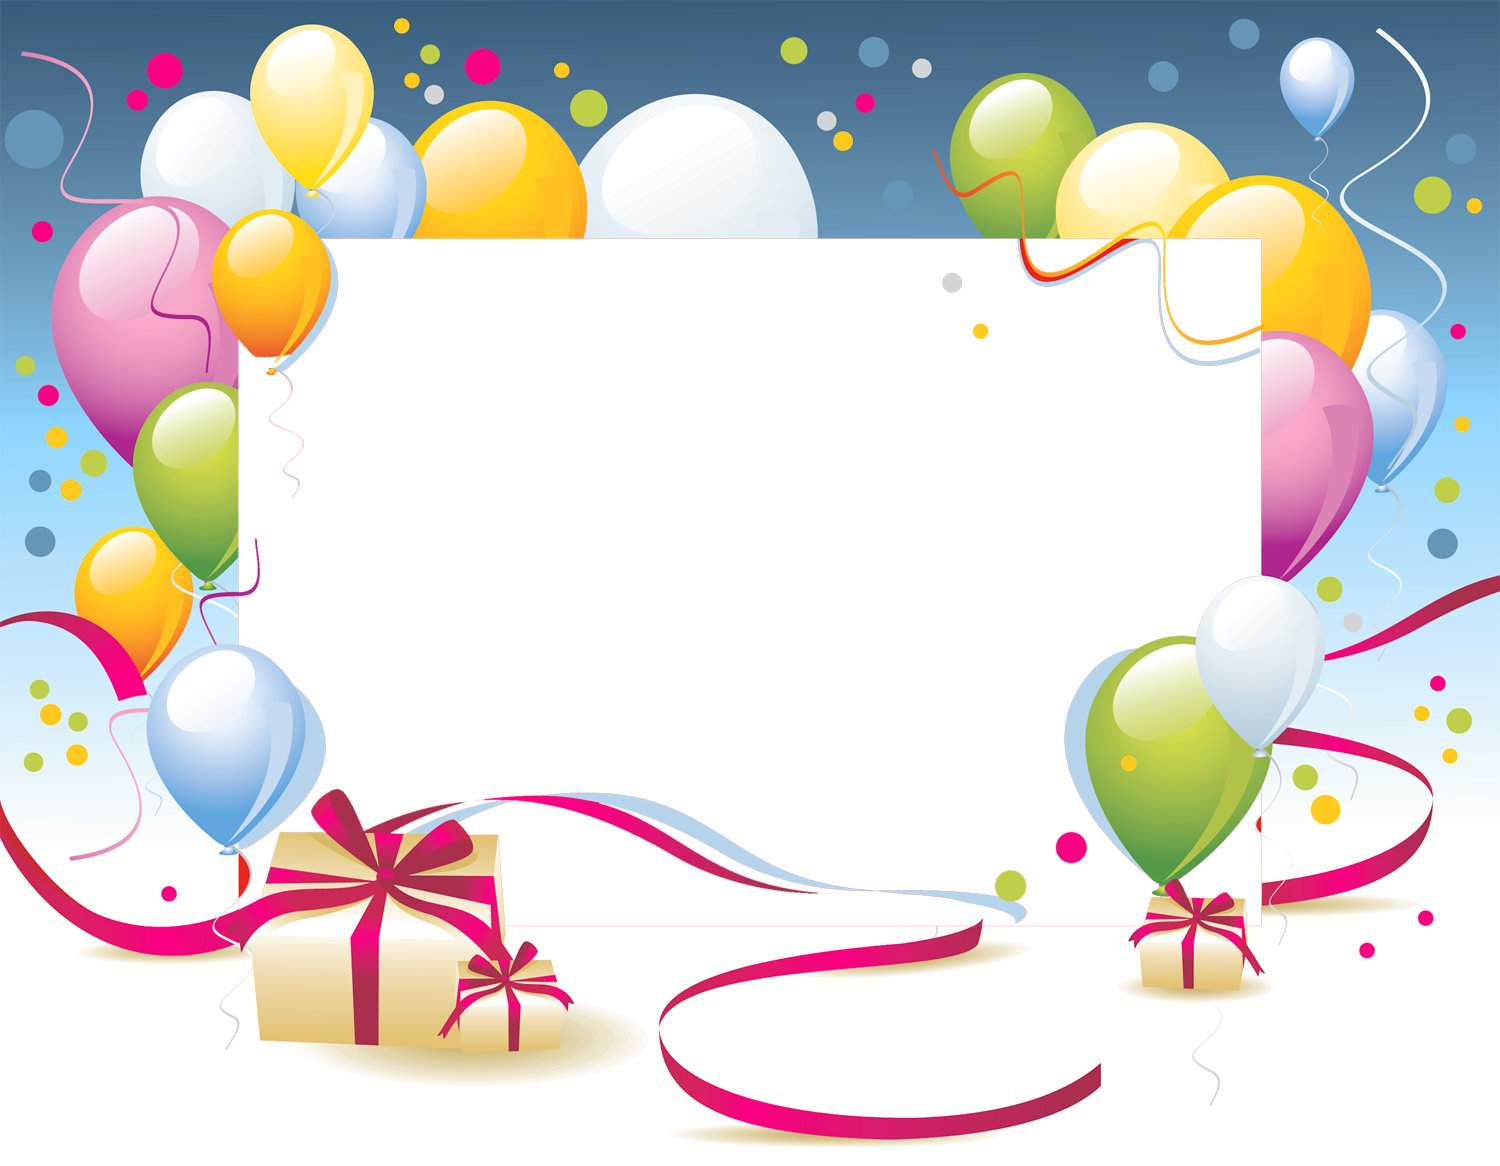 Birthday frames png. Transparent photo frame